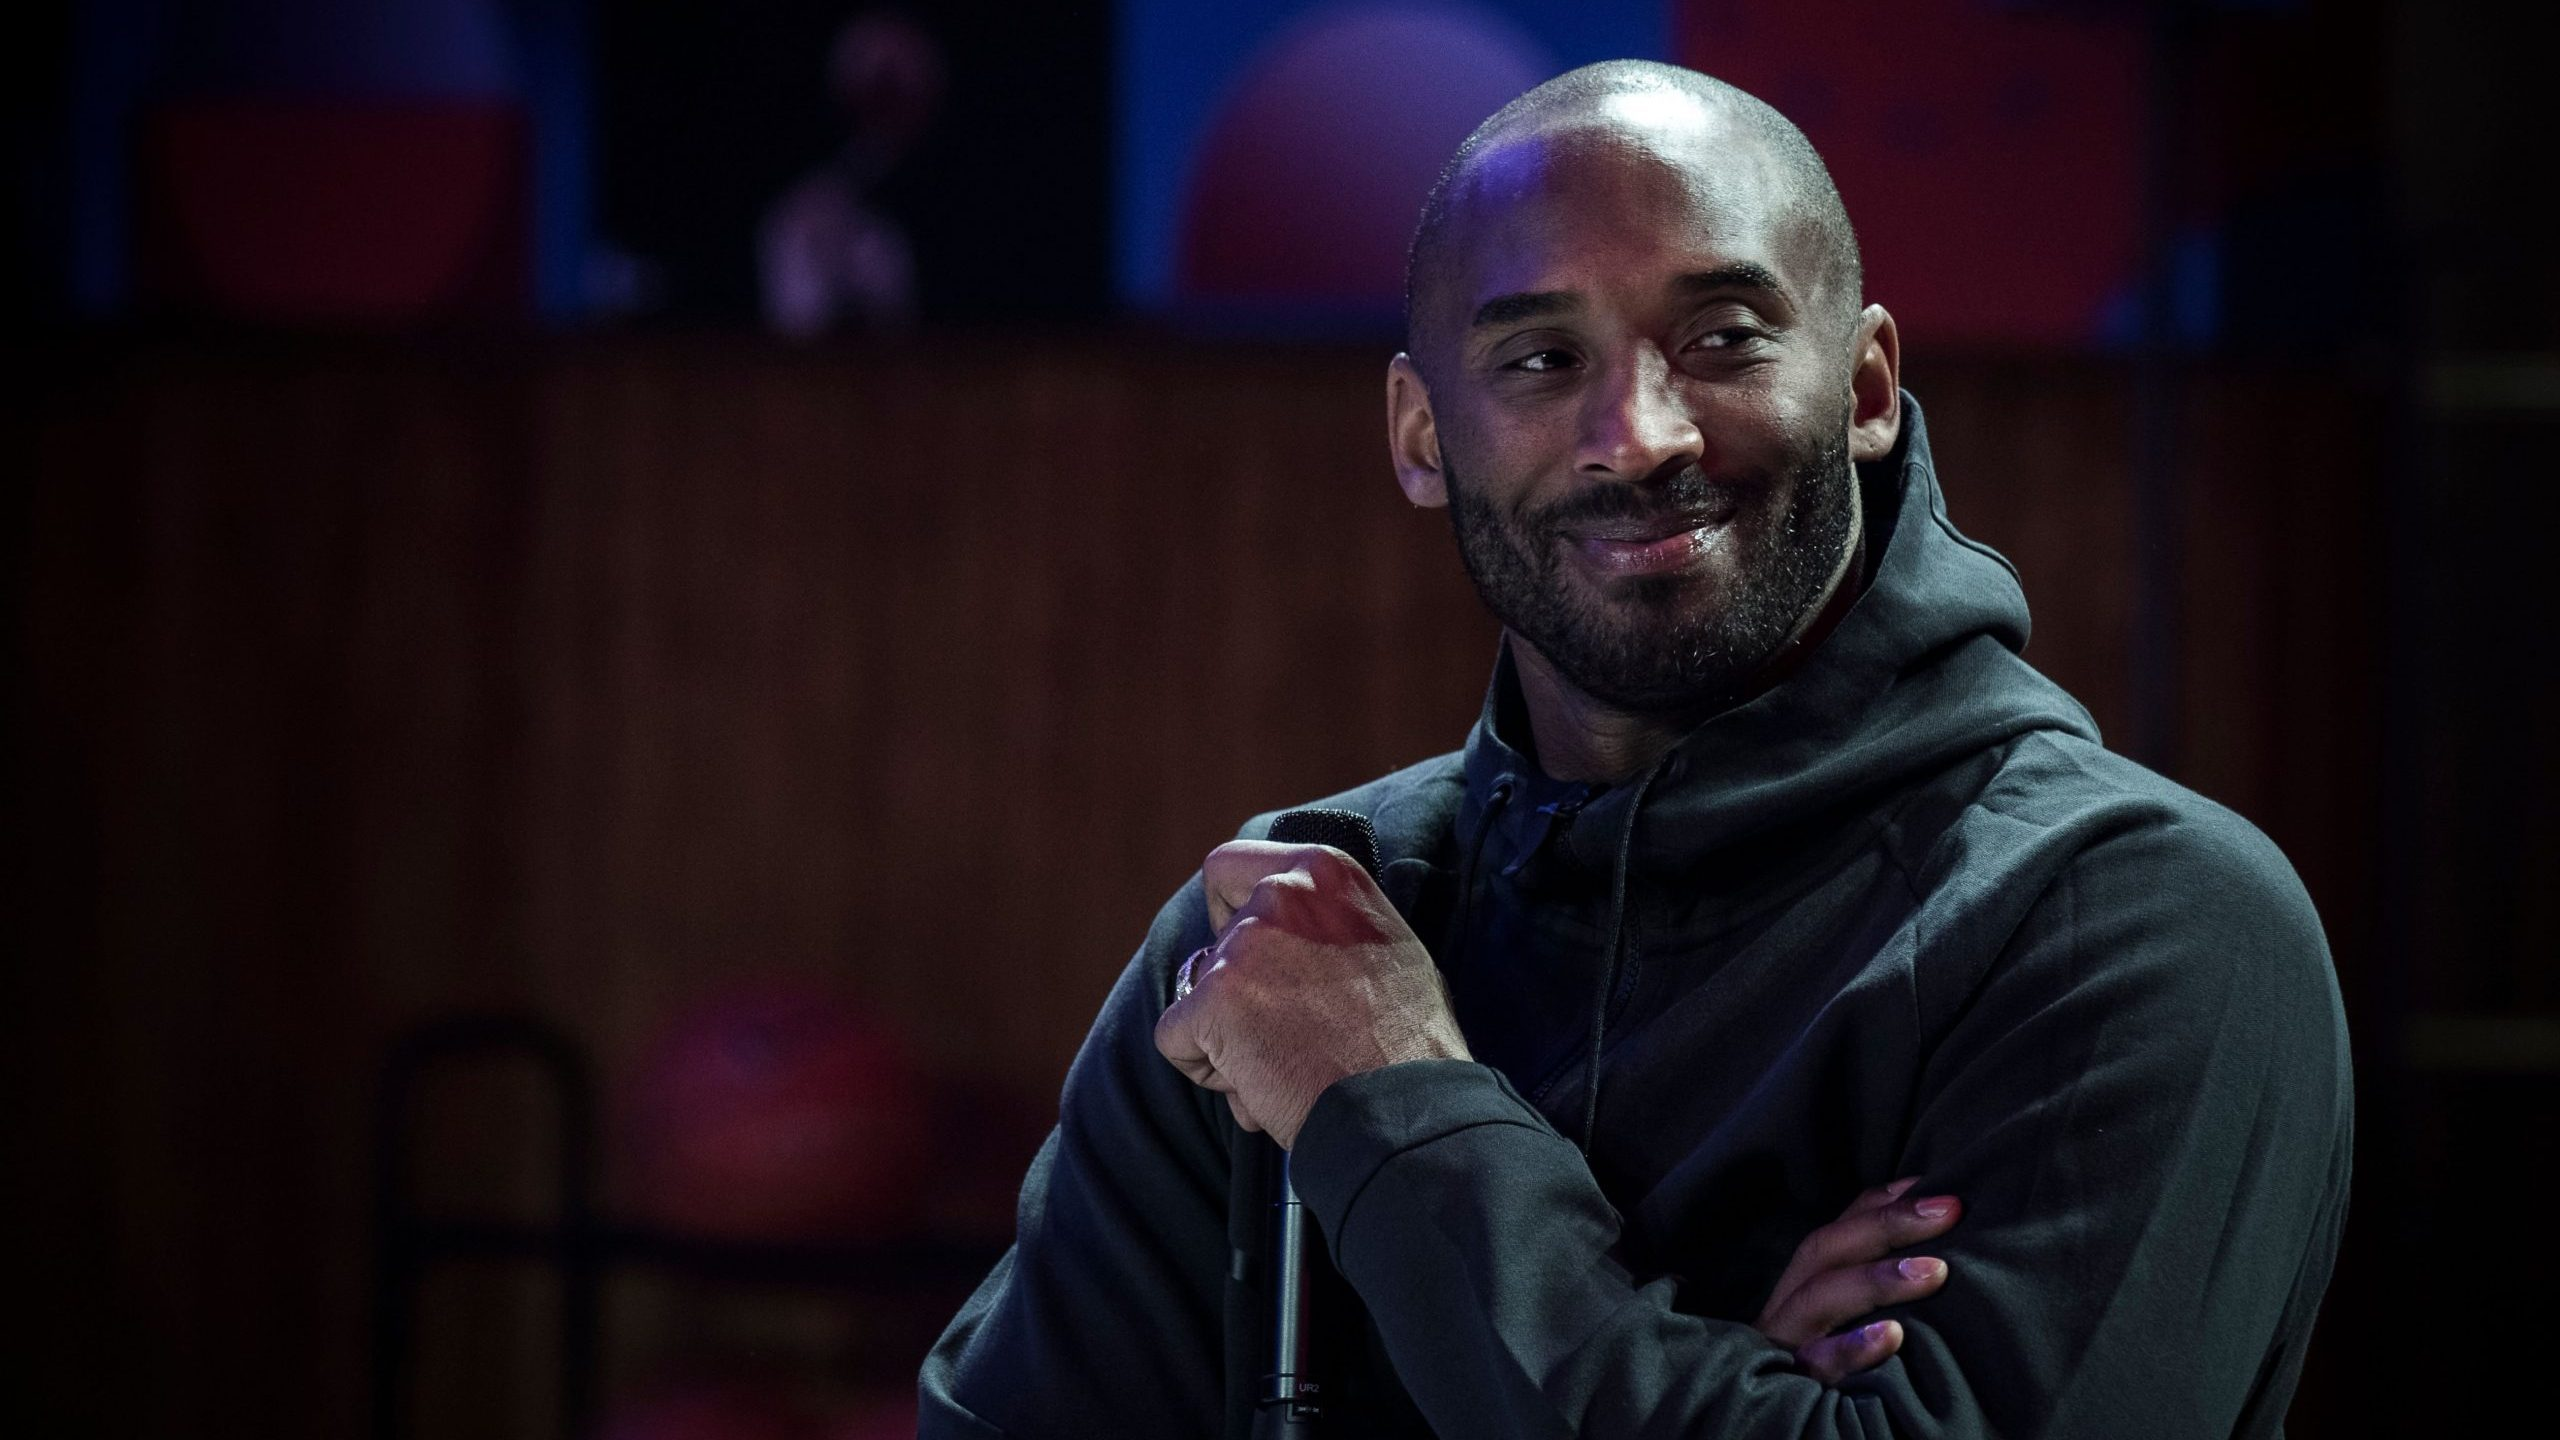 Former Laker Kobe Bryant attends a promotional event organized by Nike for the inauguration of the infrastructure improvements of a local basketball playground at the Jean-Jaures sports hall in Paris on Oct. 21, 2017. (Credit: Philippe Lopez / AFP / Getty Images)